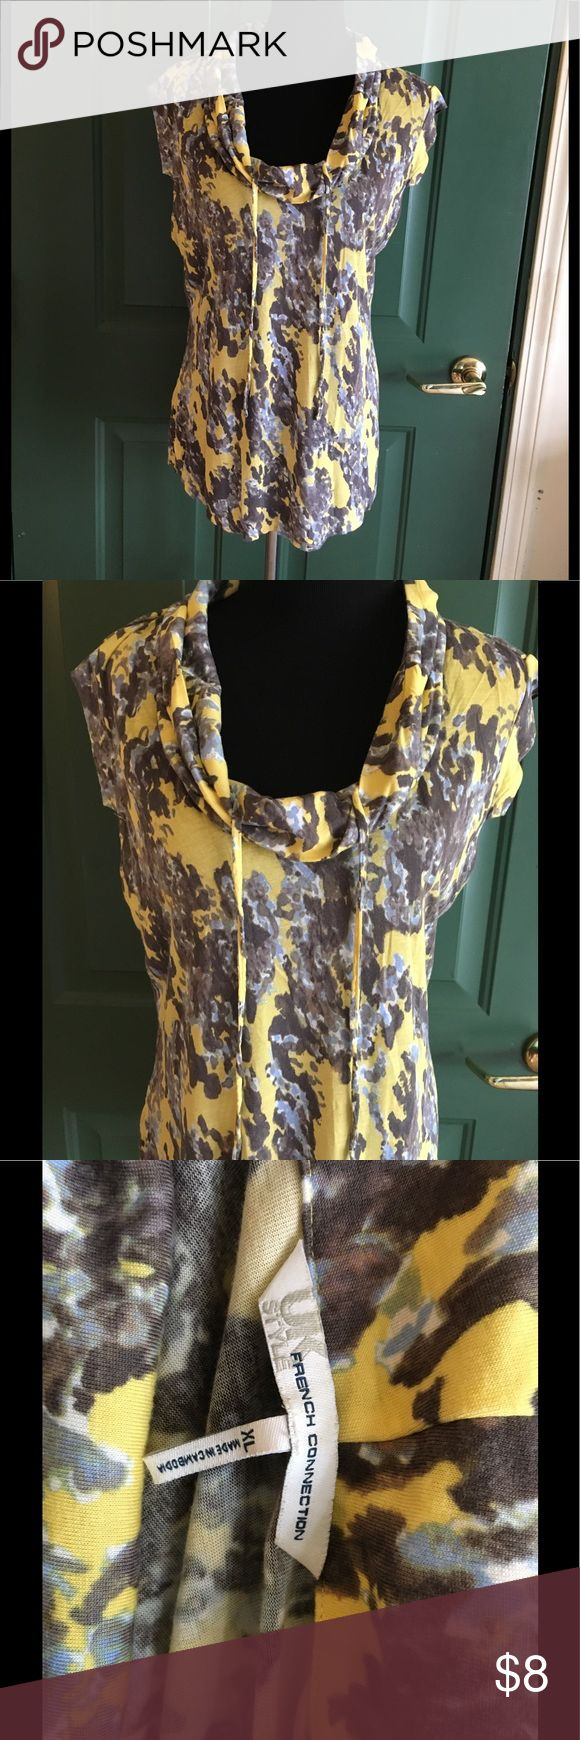 French Connection Cowl Neck Top XL Yellow and grey print top. Cowl neckline with accent strings.  Cap sleeves. Tshirt Knit.  Size XL. From French Connection UK Style.  Good condition.  Important:   All items are freshly laundered as applicable prior to shipping (new items and shoes excluded).  Not all my items are from pet/smoke free homes.  Price is reduced to reflect this!   Thank you for looking! French Connection Tops Tees - Short Sleeve